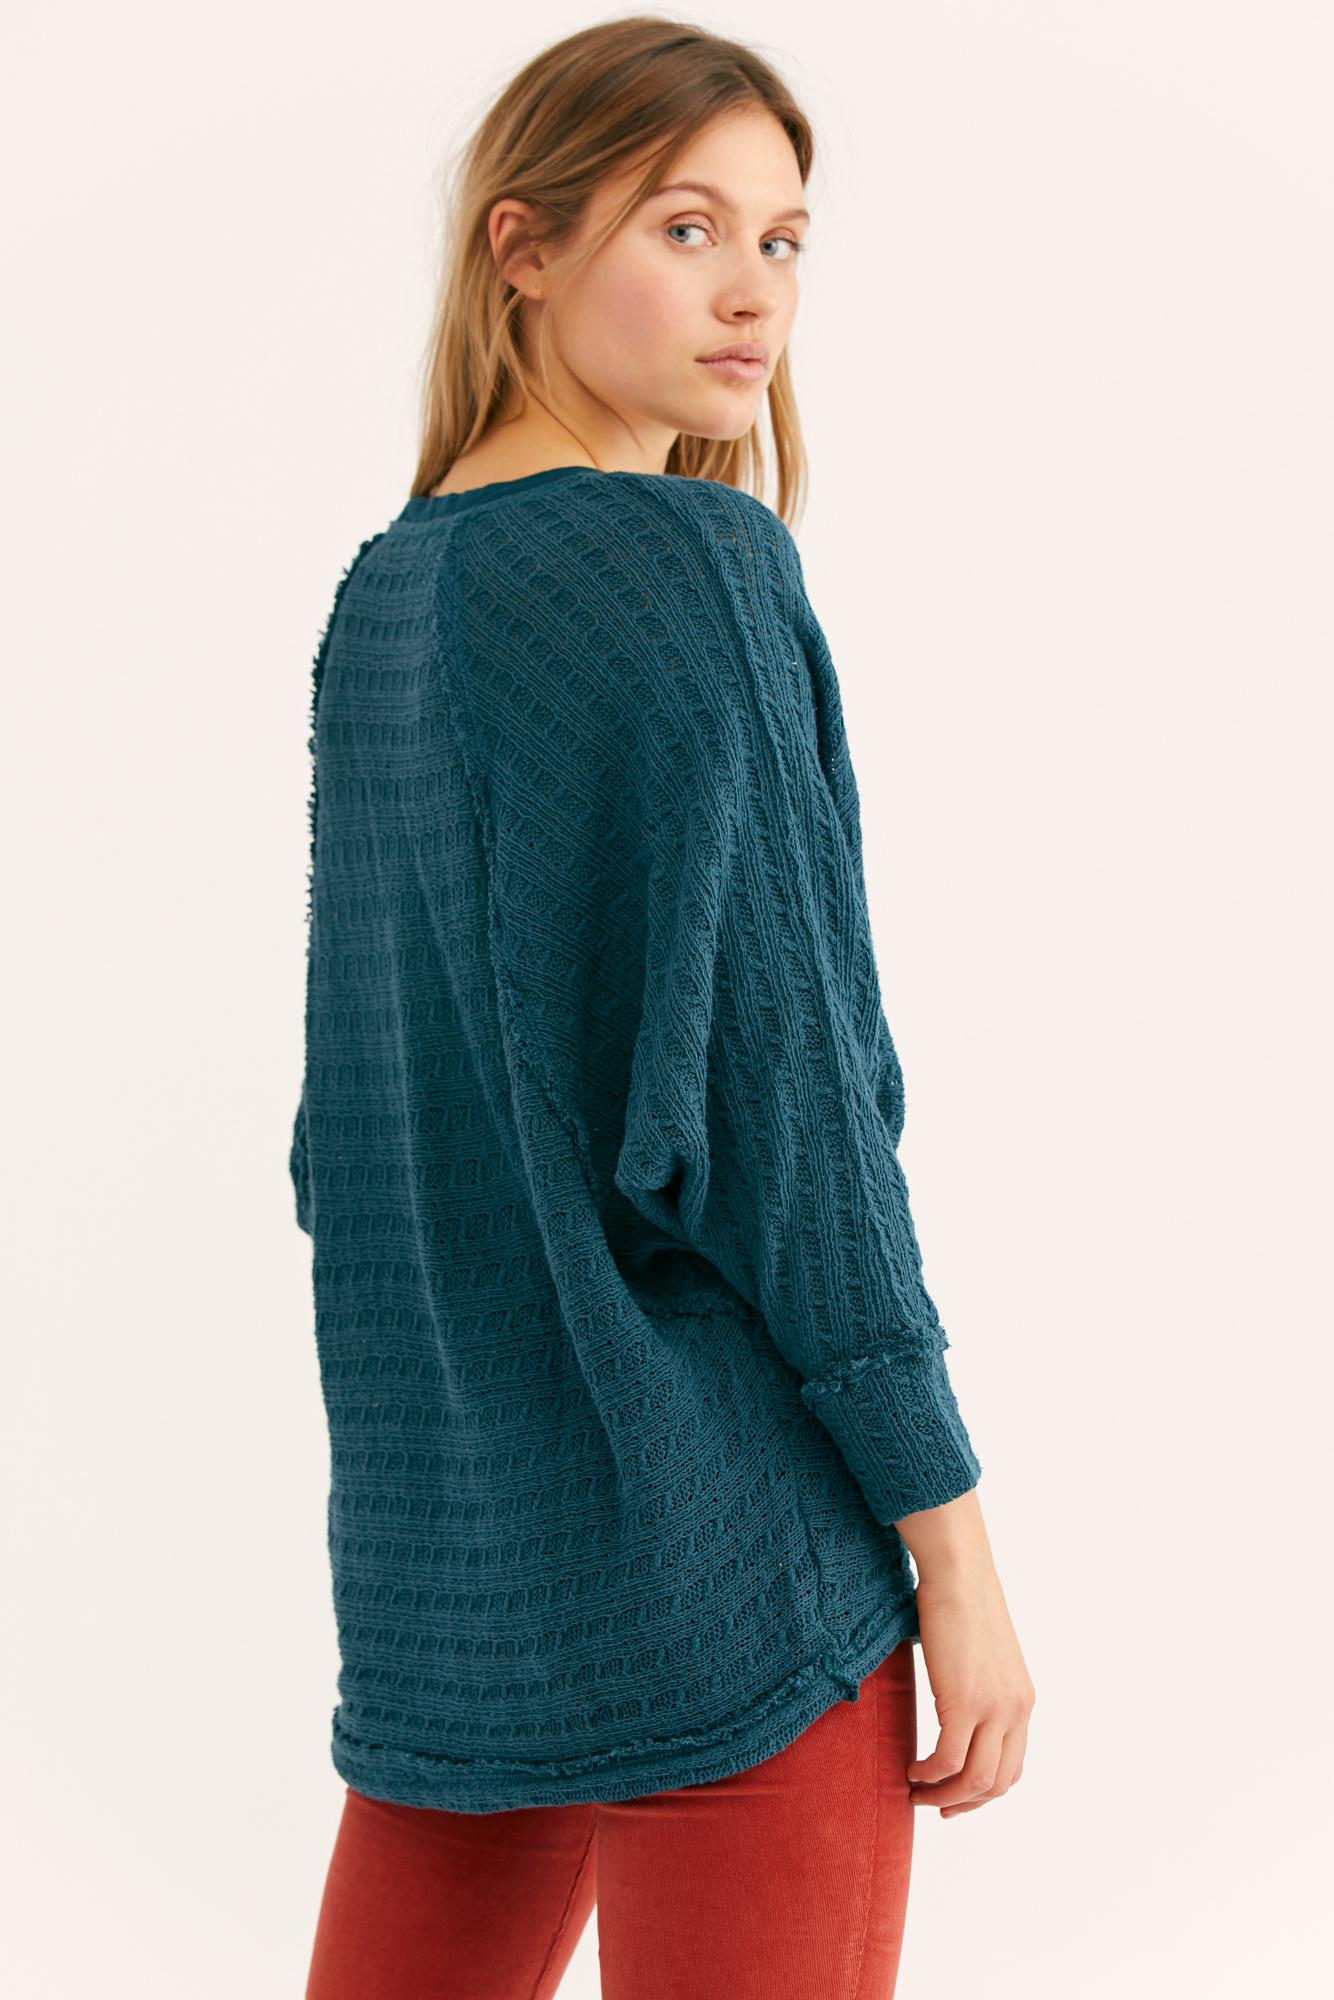 f8c14459d591 Free People We The Free Thien's Hacci Top in Blue - Lyst